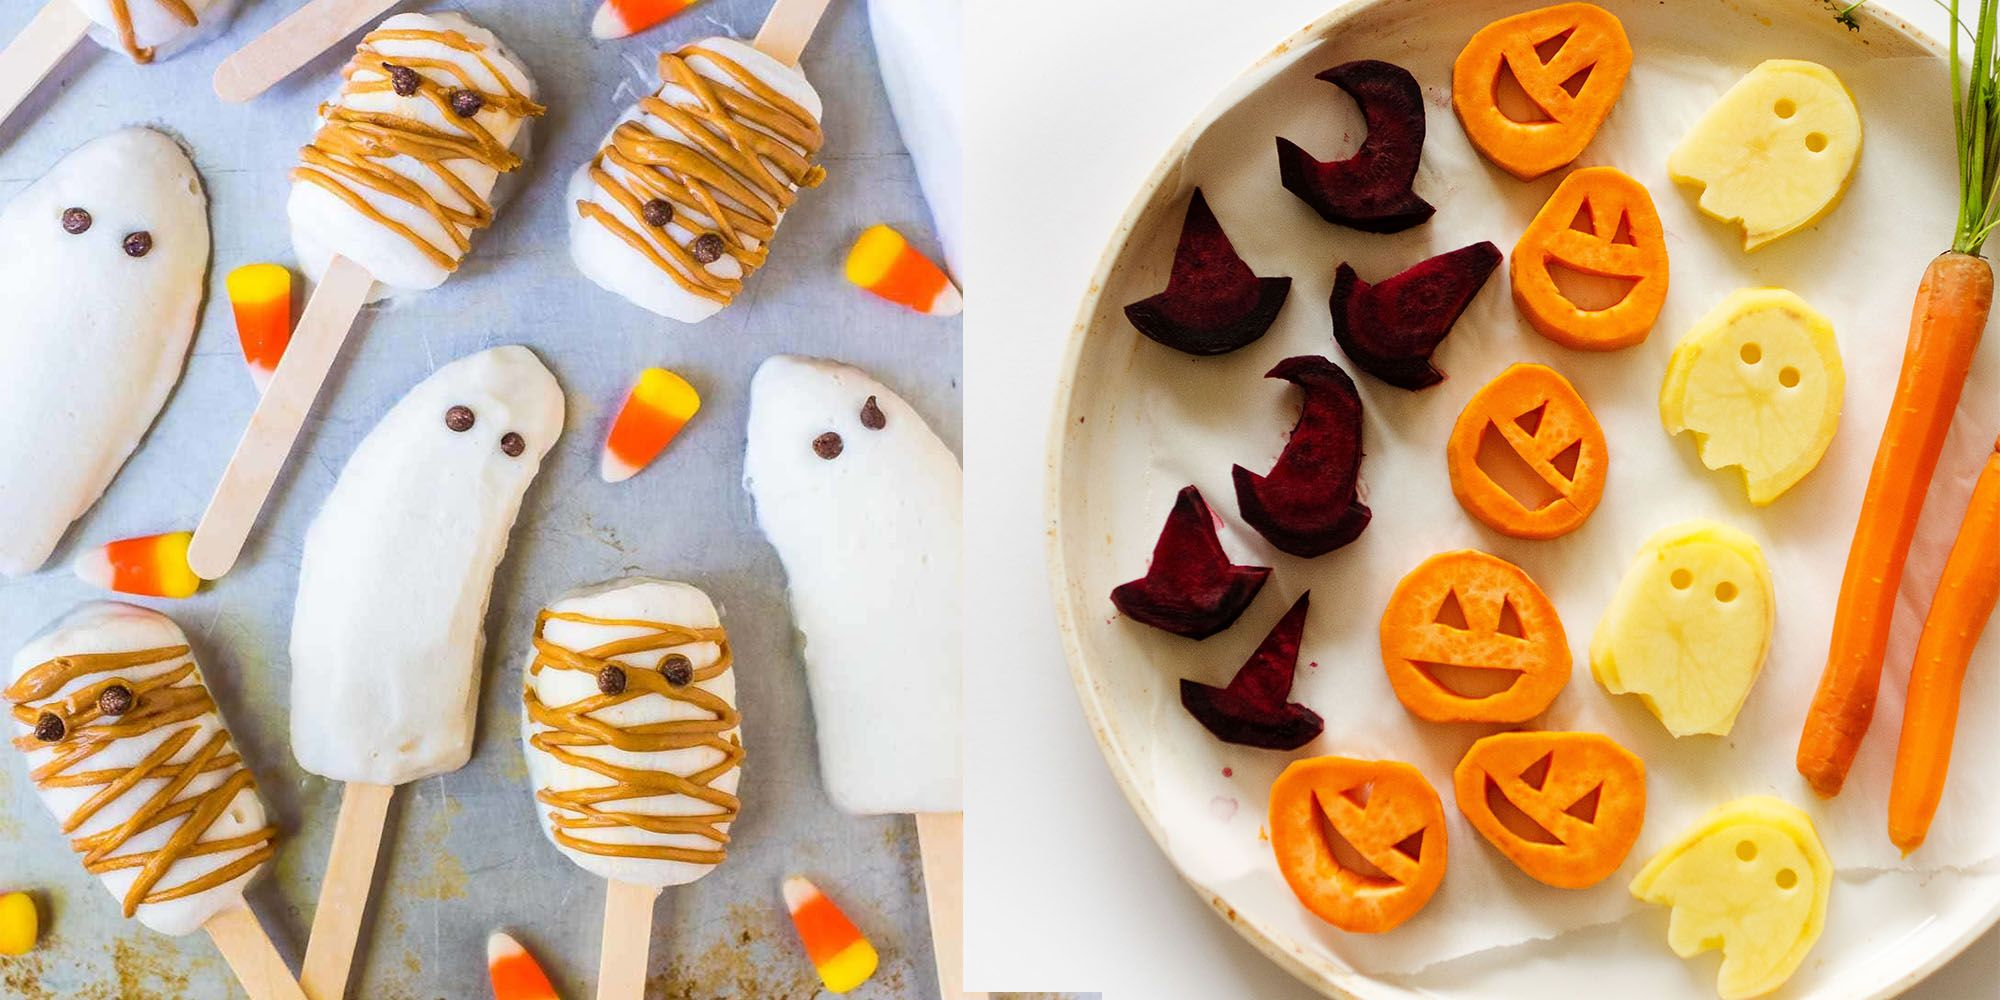 19 Healthy Halloween Recipe Ideas For Snacks And Desserts